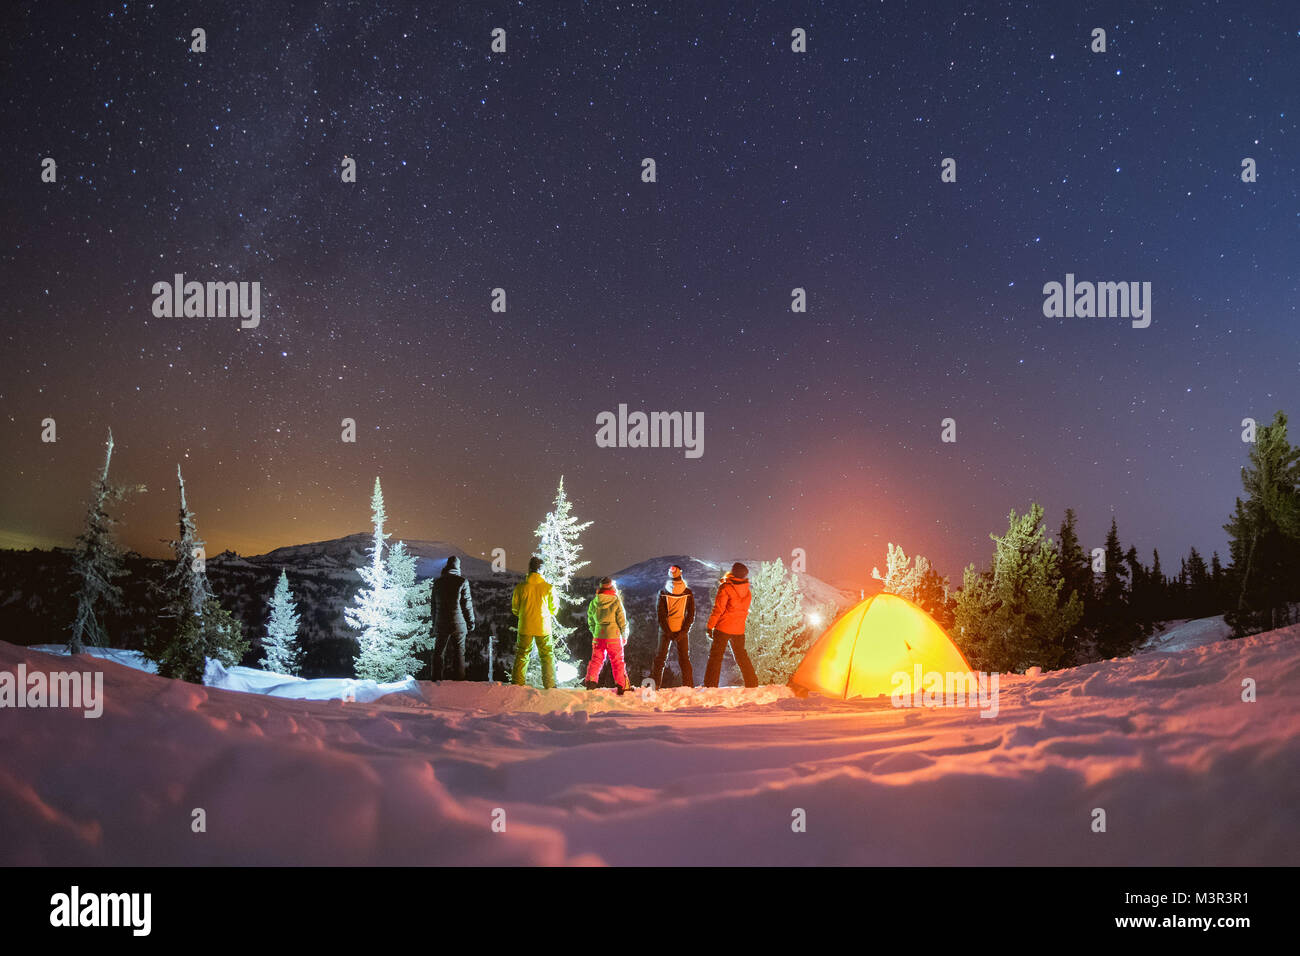 Travel night camping winter concept with friends and tent Stock Photo